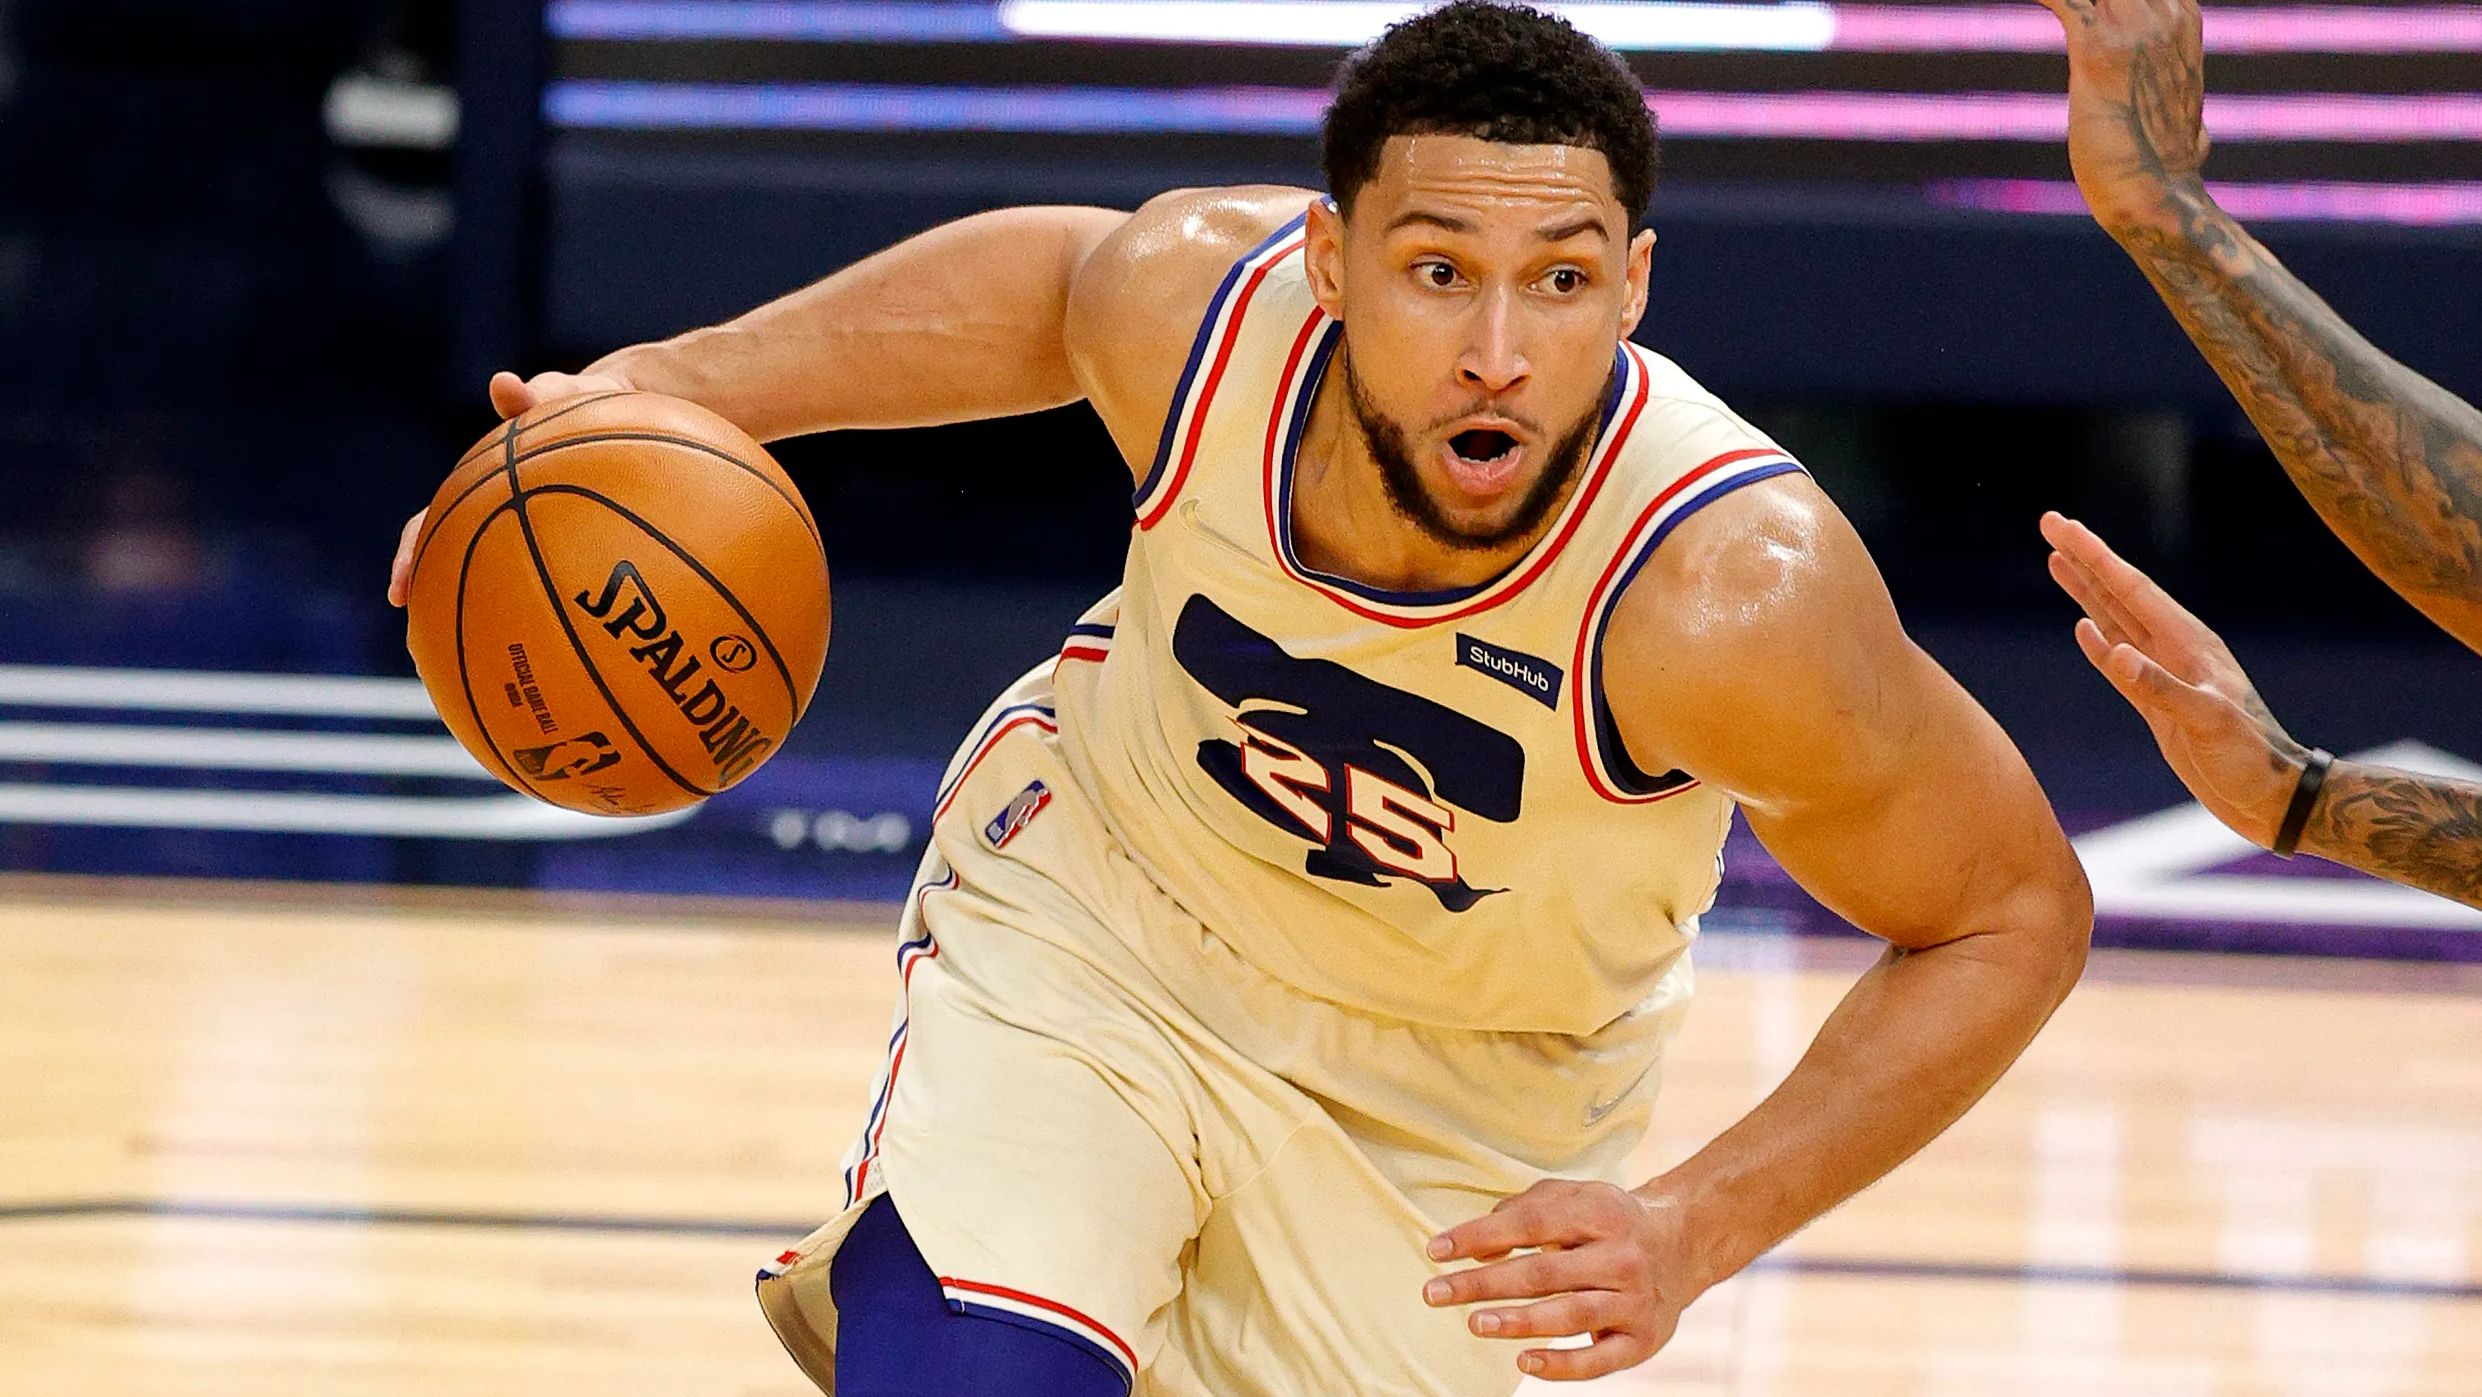 Ben Simmons driving into the basket